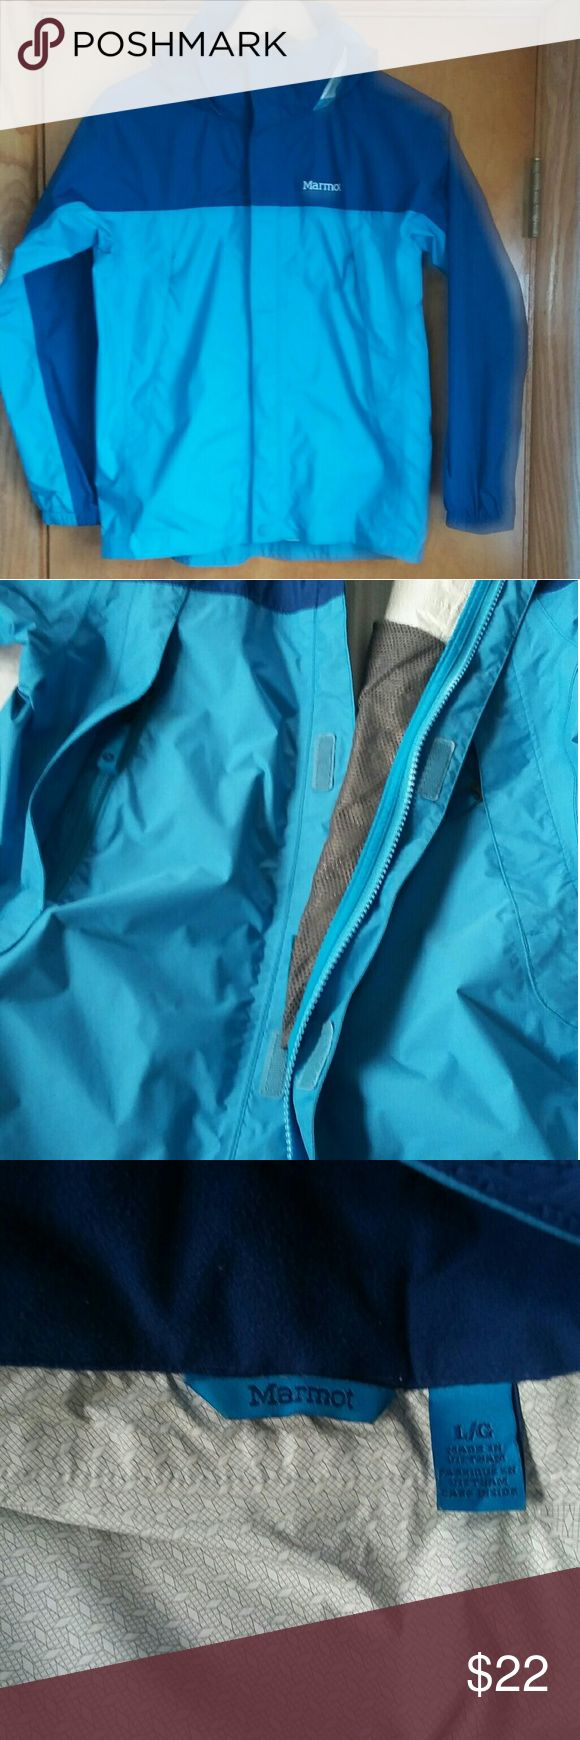 """Marmot Rain Parka Boys L Lightweight shell hooded, rain parka. Large mesh lined zip pockets. Generous hood with visor, rolls into collar. Excellent condition. 🚩 will measure soon. I am 5'5"""", size 0/2 and it is just a bit small for me. 🚩tiniest black spot at left side, in last photo. Marmot Jackets & Coats Raincoats"""